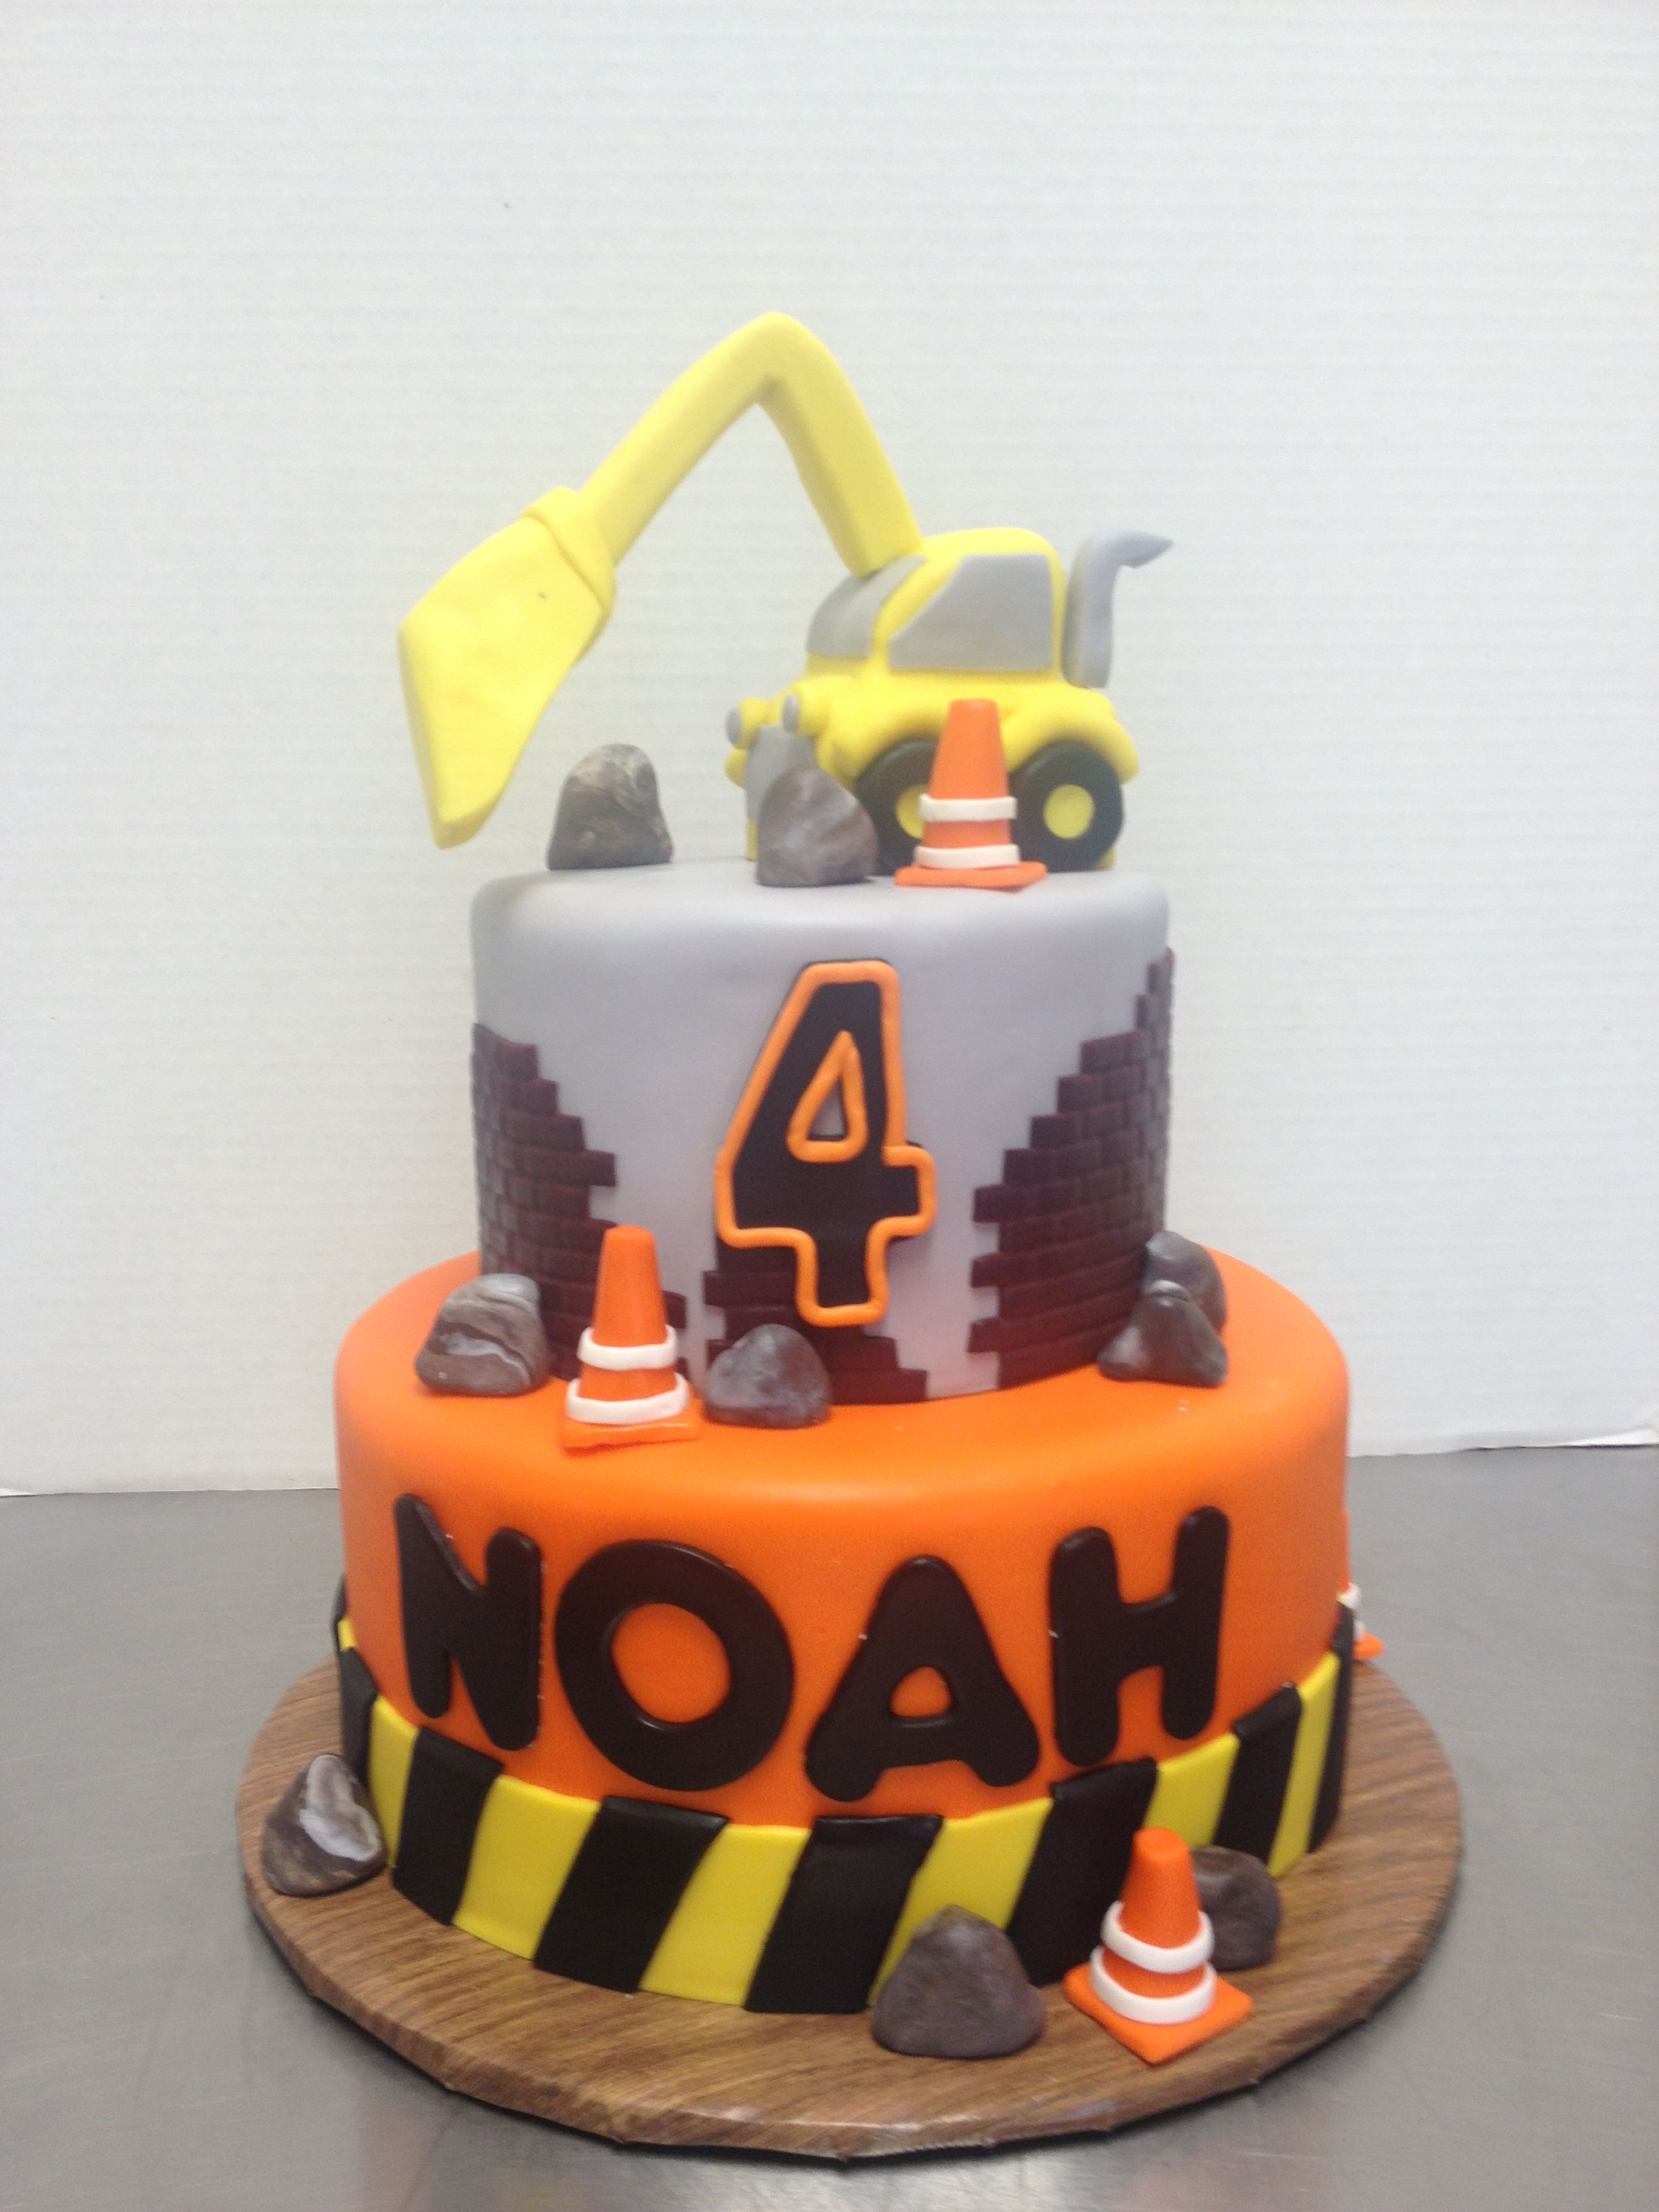 Phenomenal Loving This Construction Themed Birthday Cake With A Backhoe Funny Birthday Cards Online Elaedamsfinfo